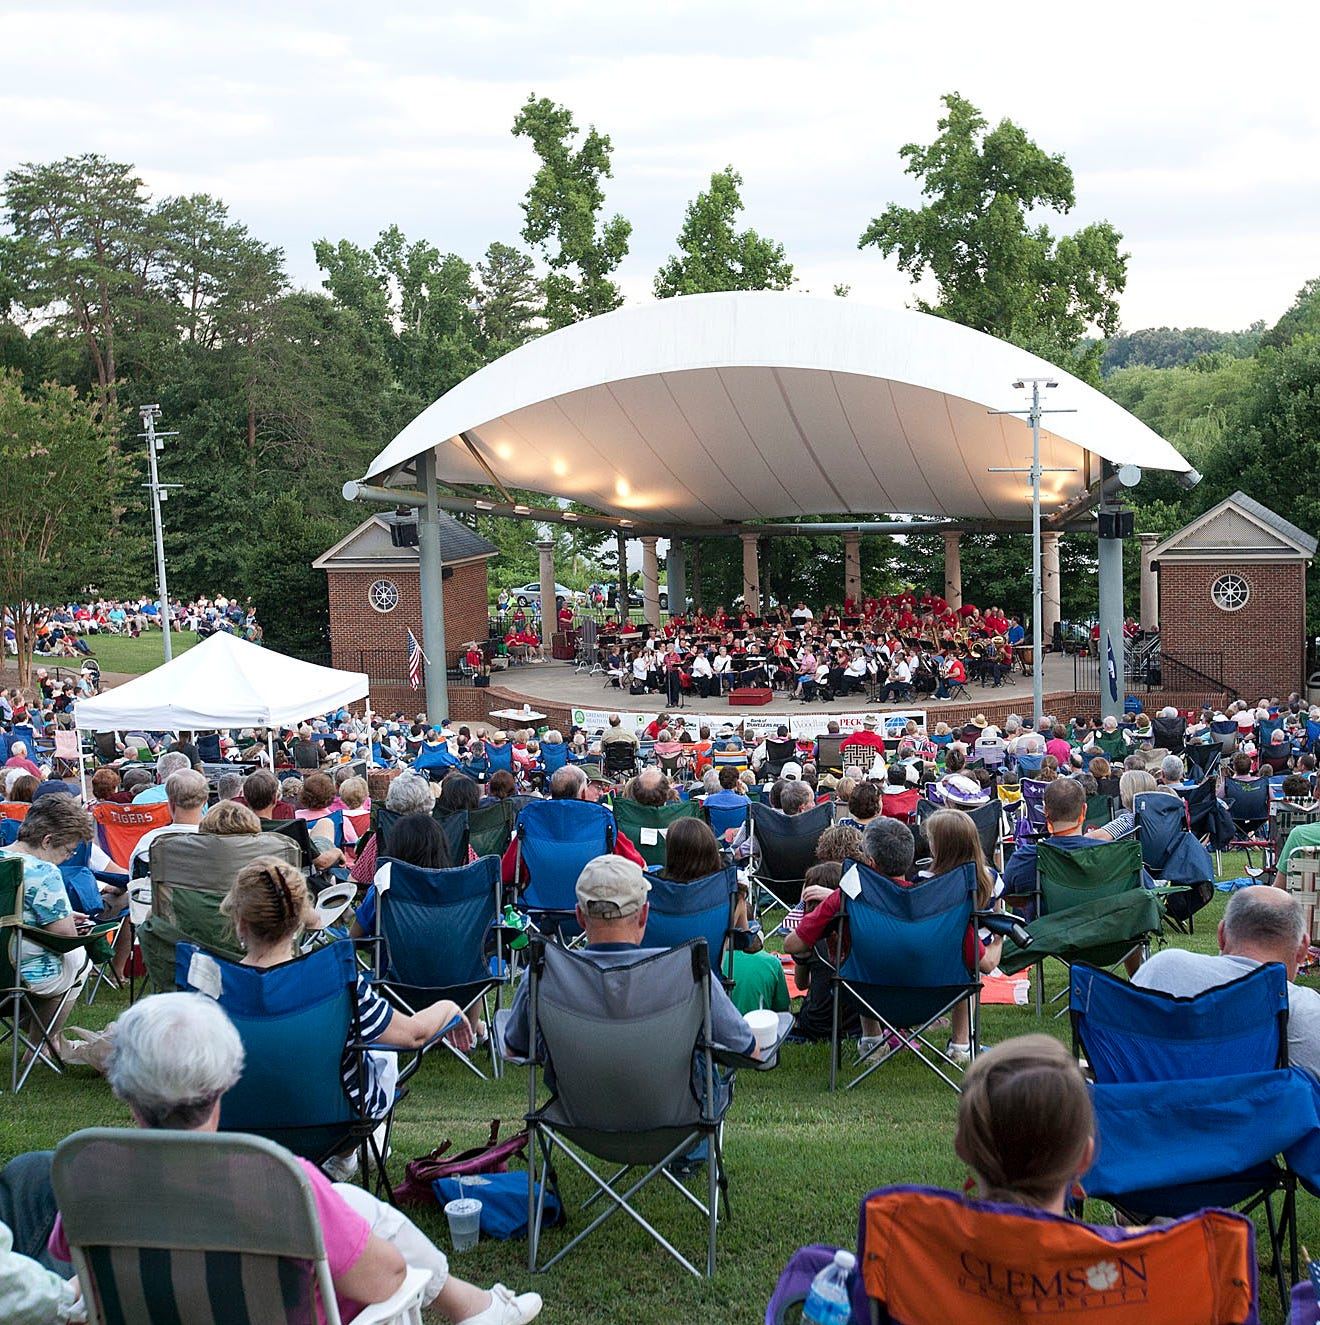 Furman's 'Music by the Lake' concert series kicks off May 23. Here's the full schedule